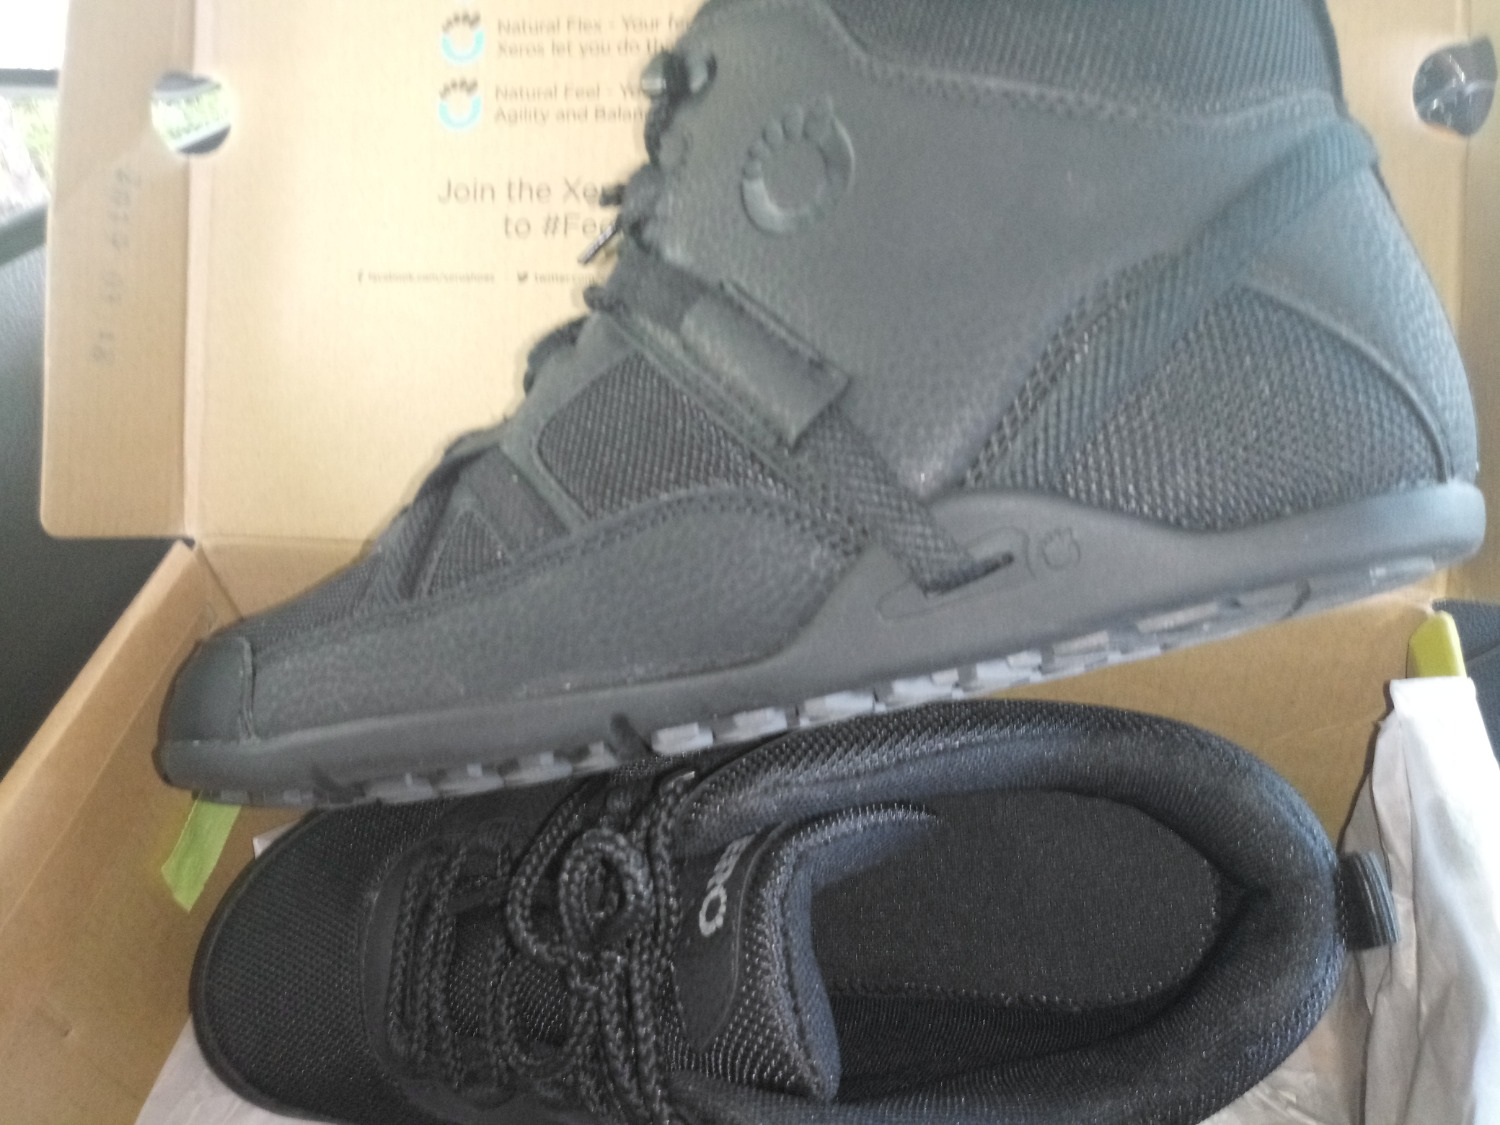 8743eb9d0ad48 After trying for months to get the daylite hikers i was made aware of a new  design. As soon as I seem them I ordered them.. Amazing and comfortable.